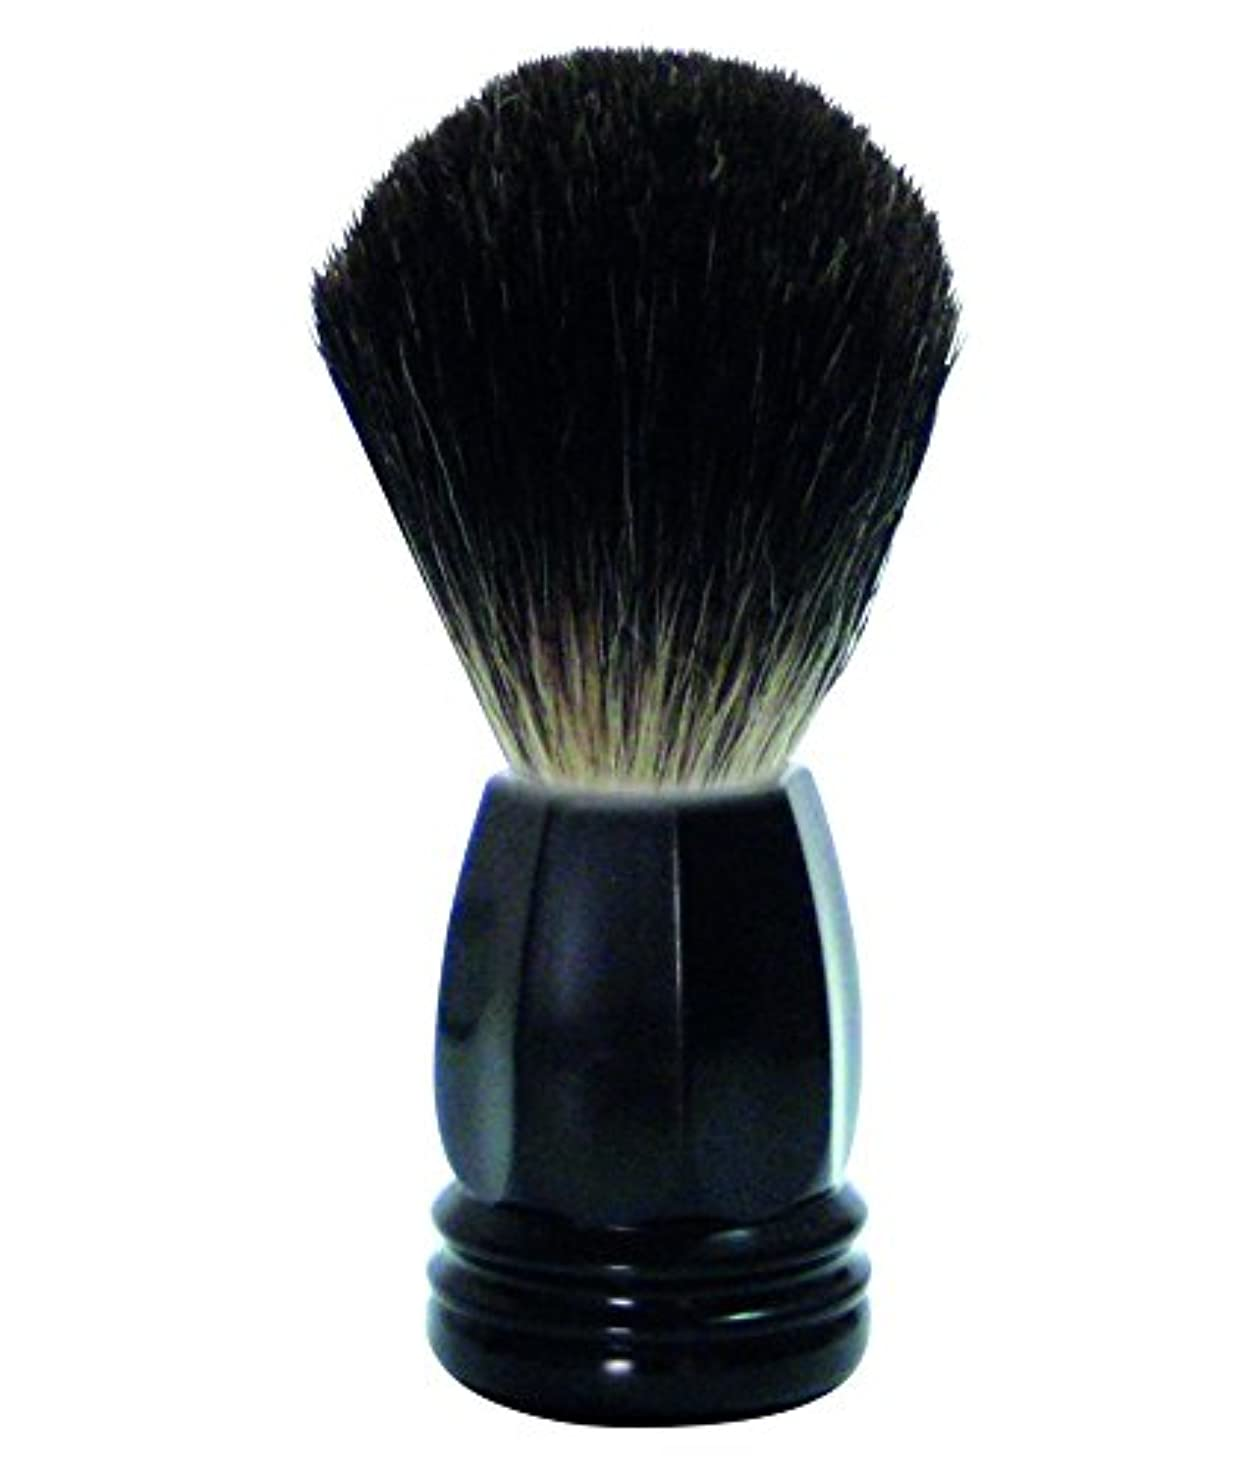 ビュッフェ配る露出度の高いGOLDDACHS Shaving Brush, 100% Badger hair, black polymer handle